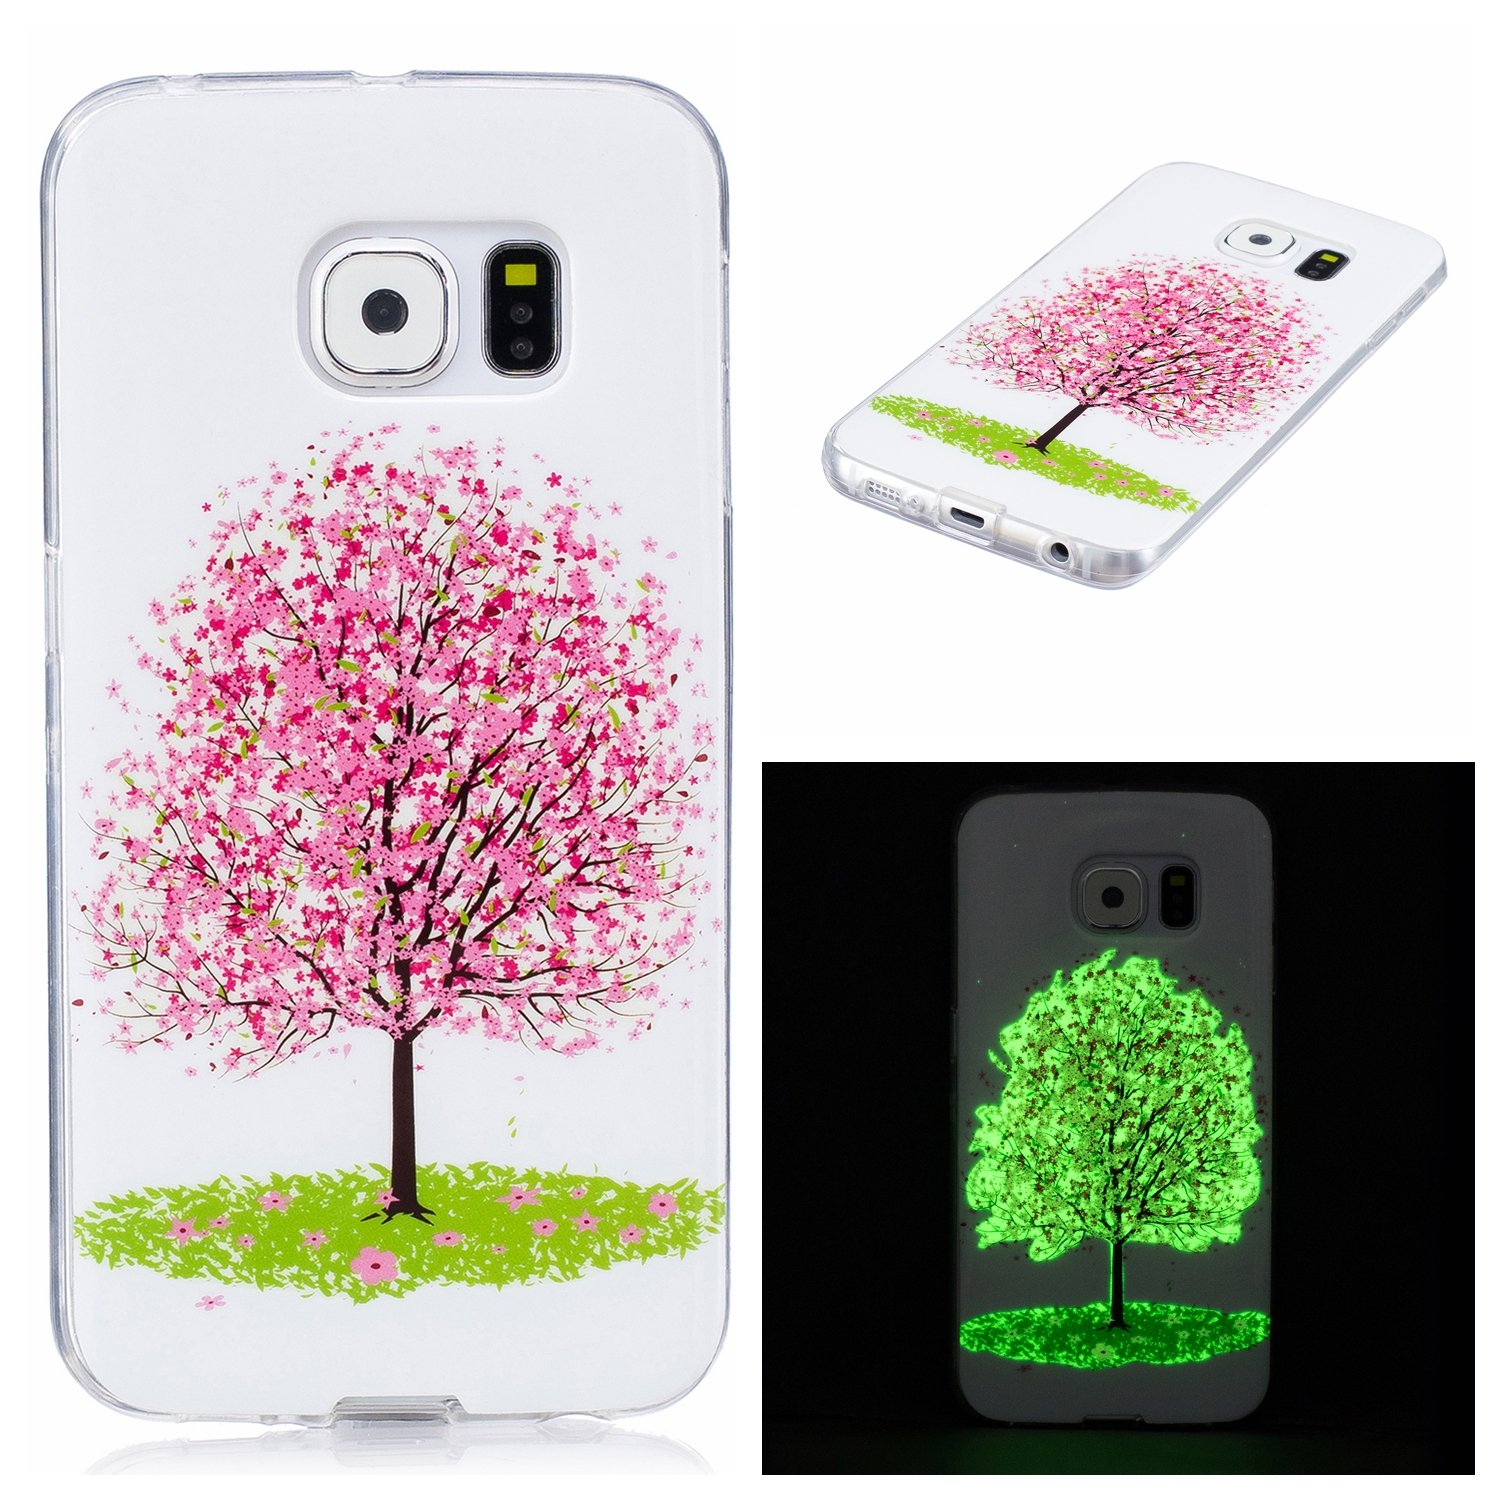 Galaxy S6 Edge Luminous Case, BONROY® Fluorescent Effect Night Glow In The Dark Transparent Ultra-Thin Soft Gel TPU Silicone Bumper Case Stylish Unique Colourful Printed Pattern Design Anti-Scratch Shock Absorption Protective Case Cover for Samsung Gal